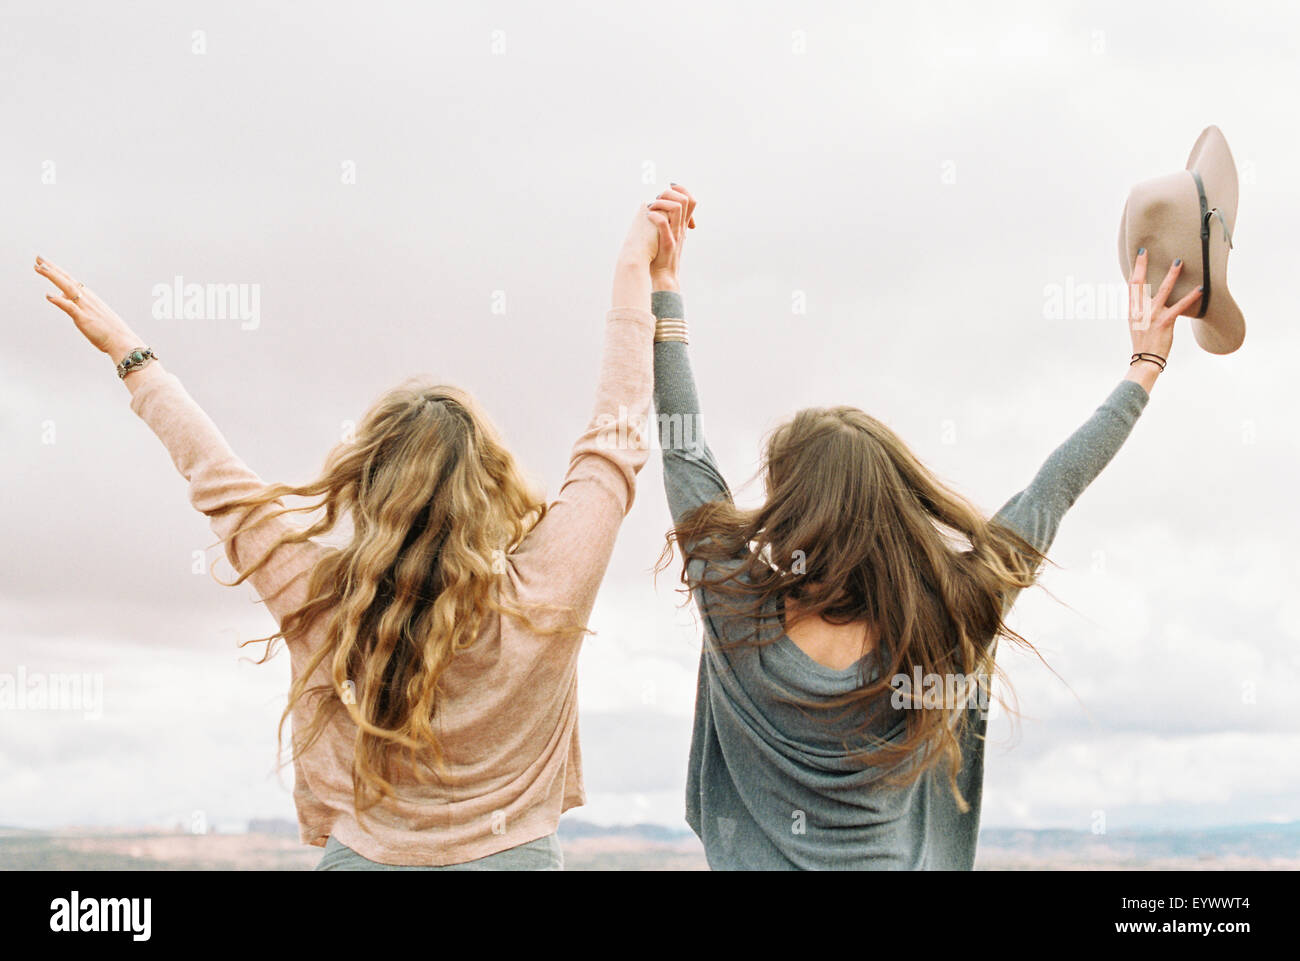 two women with their arms raised up in the air. - Stock Image